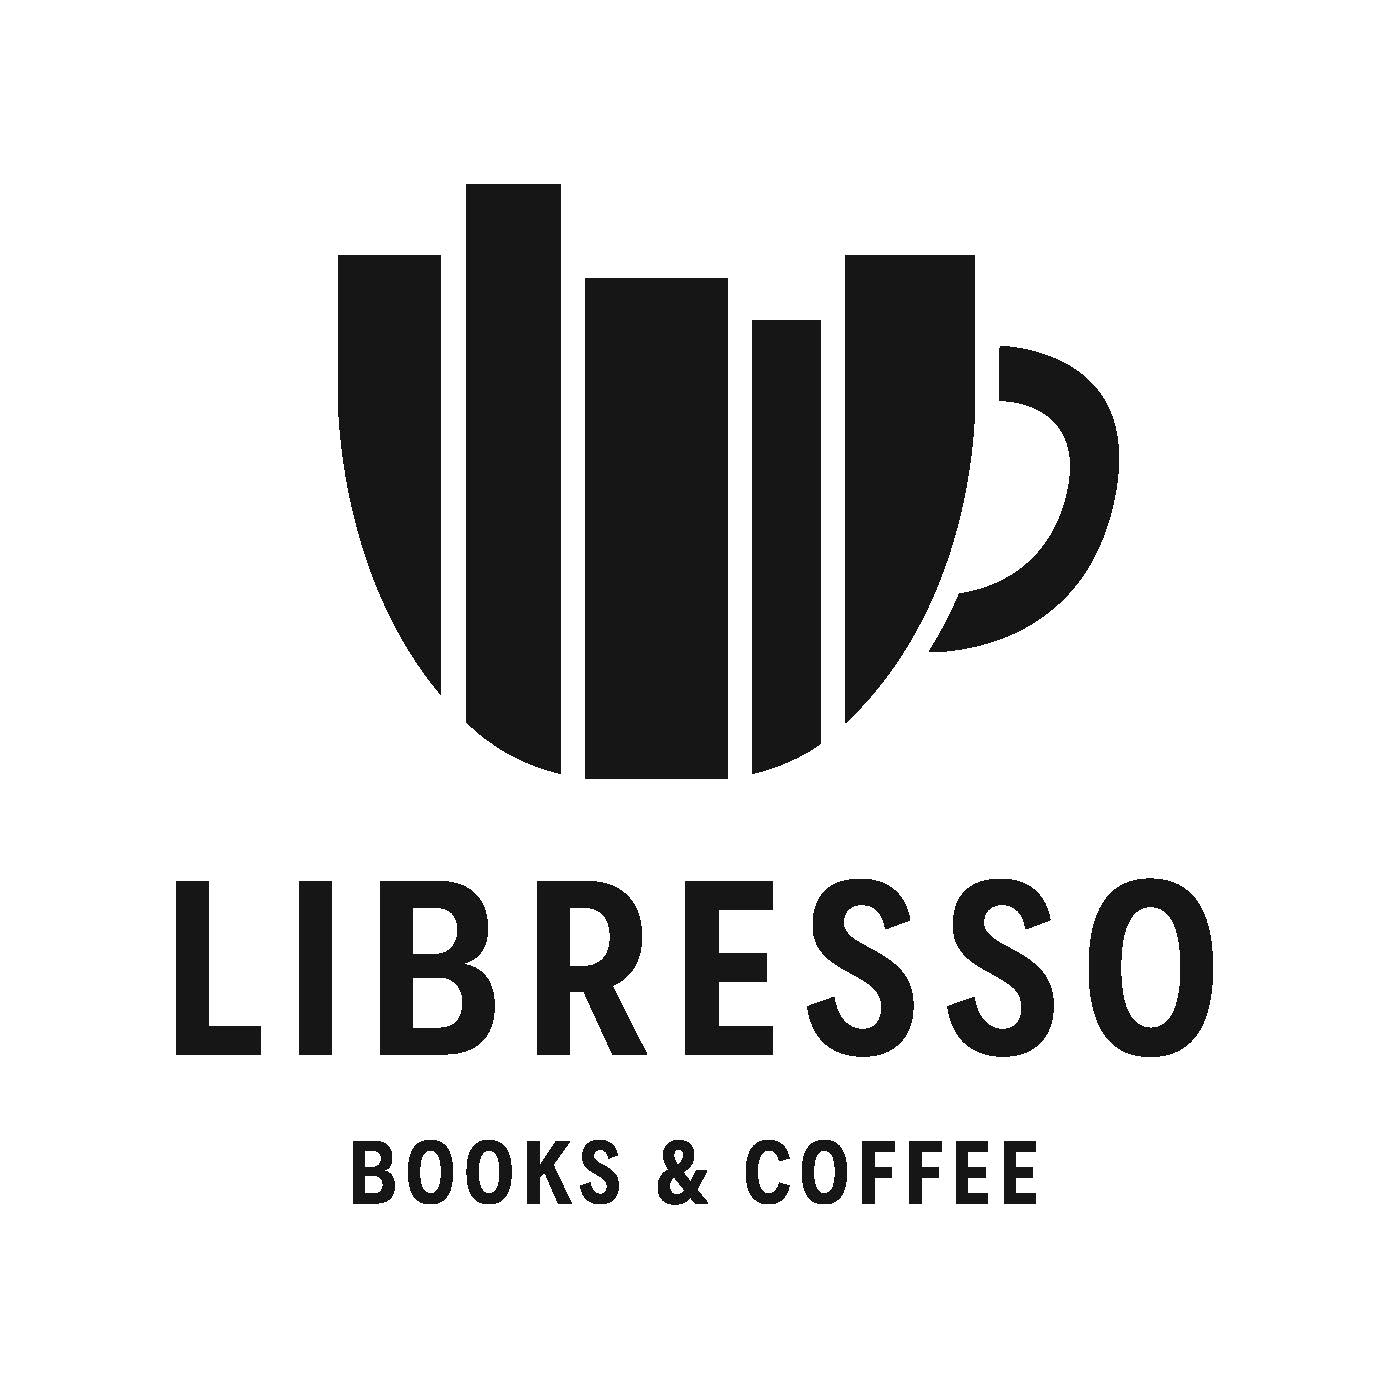 Libresso Books & Coffee